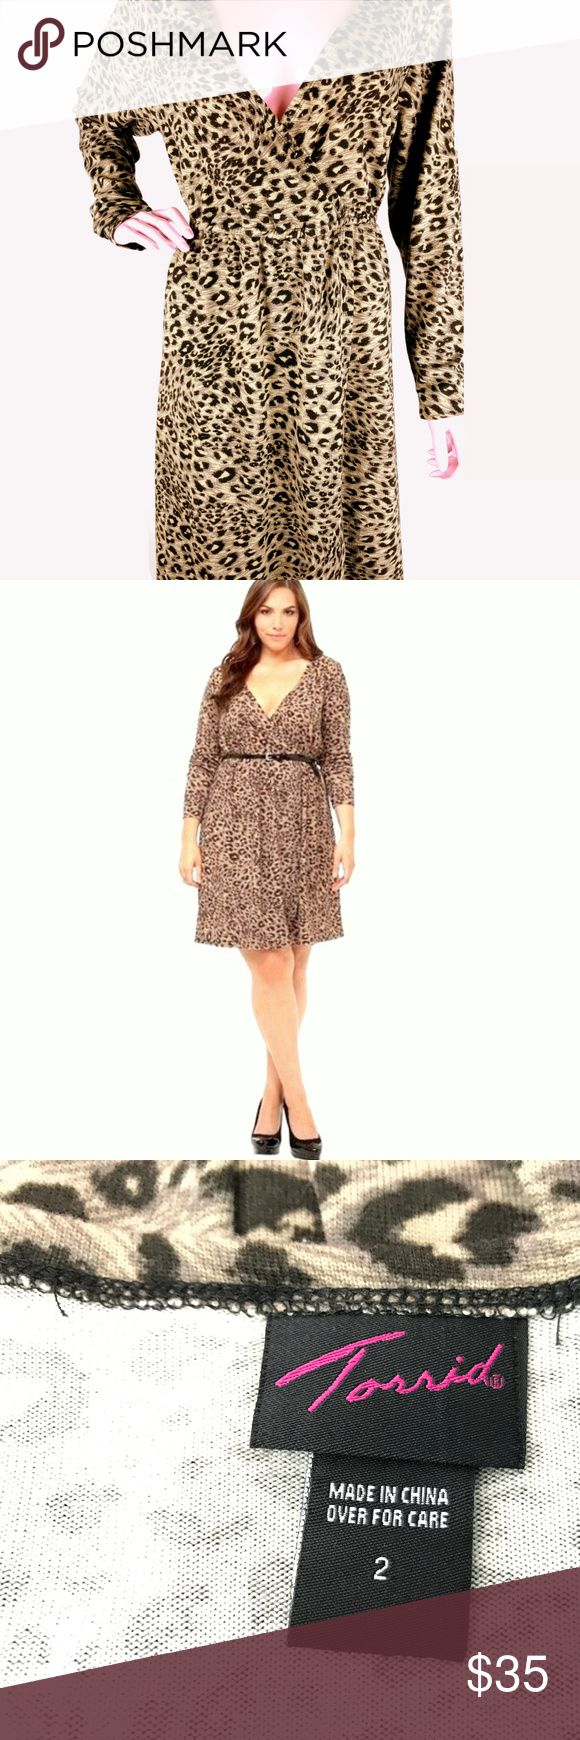 "TORRID Cheetah Animal Print Long Sleeve Knit Dress TORRID Cheetah Animal Print Long Sleeve Knit Soft Dress  Size: 2  Measurements Bust:50"" Waist: up to 53"" Length: 41""  95% Poly, 5% spandex  Please see all photos of the actual item you will receive. Please take into consideration when looking at the pictures of the actual item you will receive, as it is a larger size item on a small size mannequin. Torrid Dresses Long Sleeve"